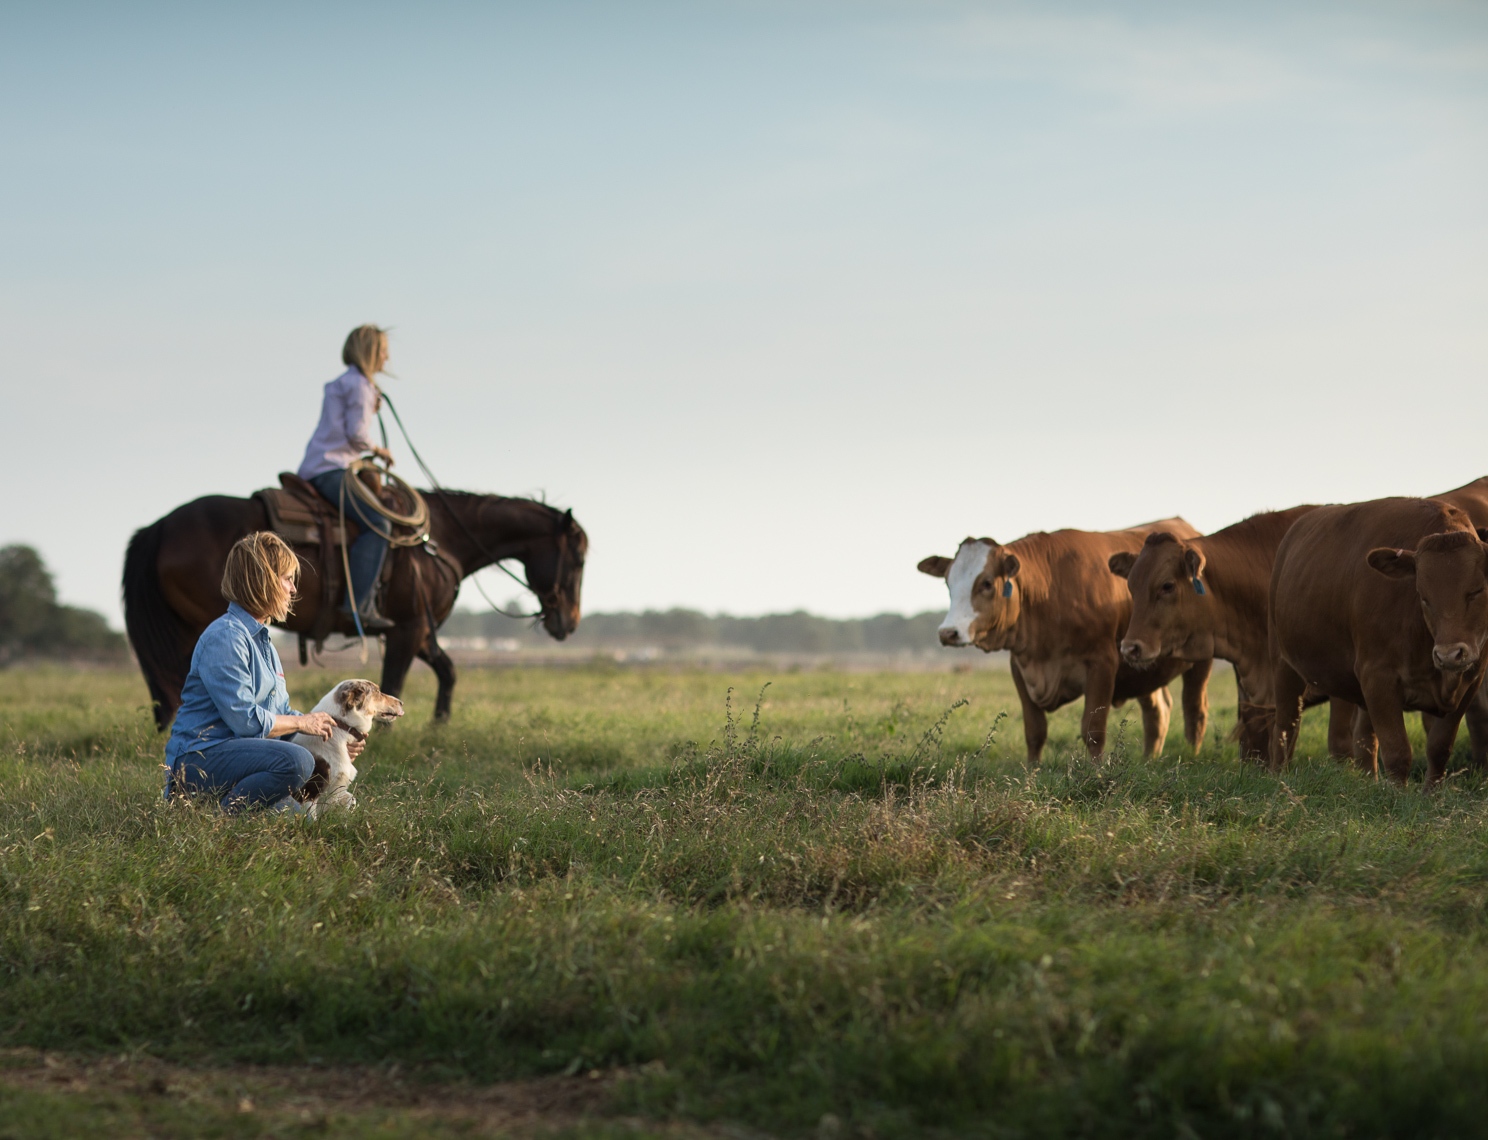 peeler-ranch-wagyu-beef-texas-jason-risner-photography-2609